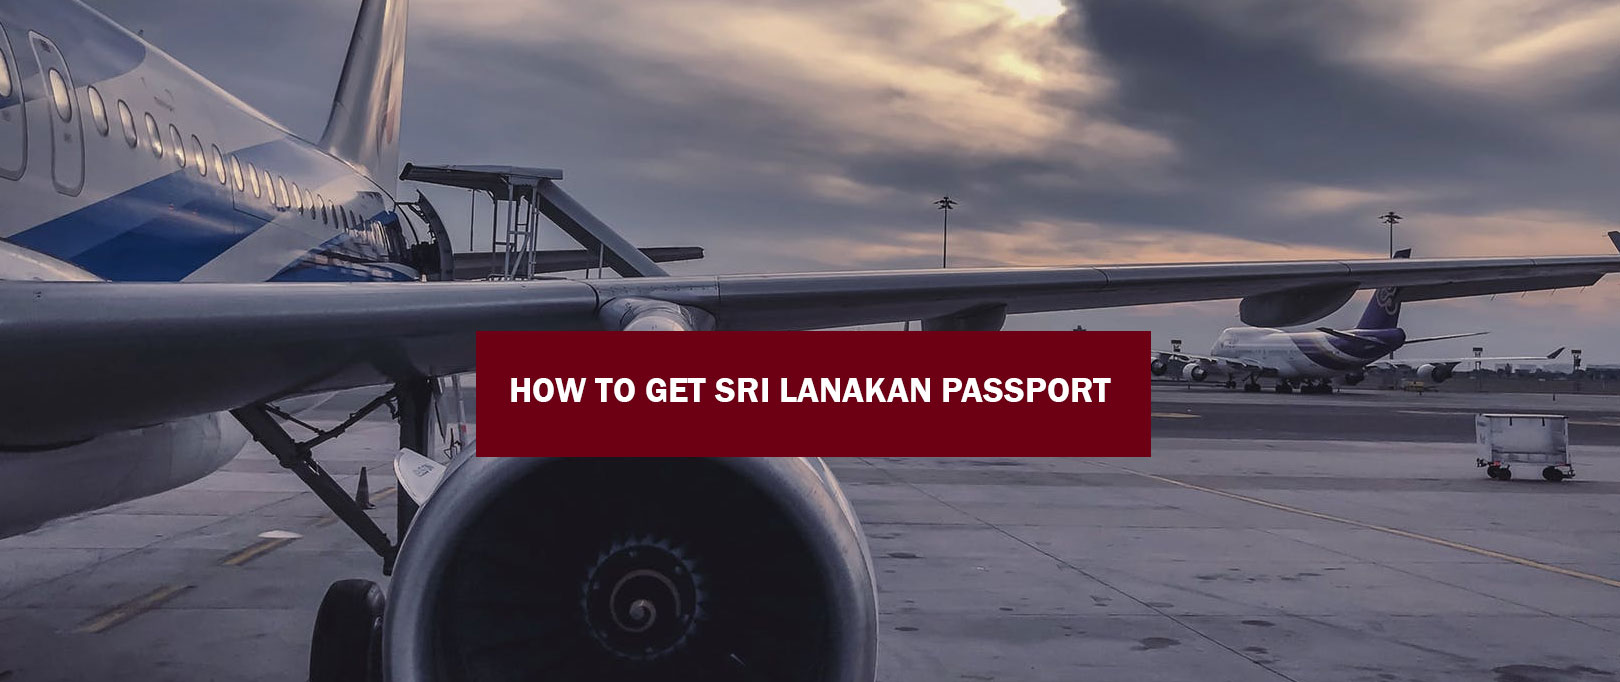 how-to-get-sri-lankan-passport